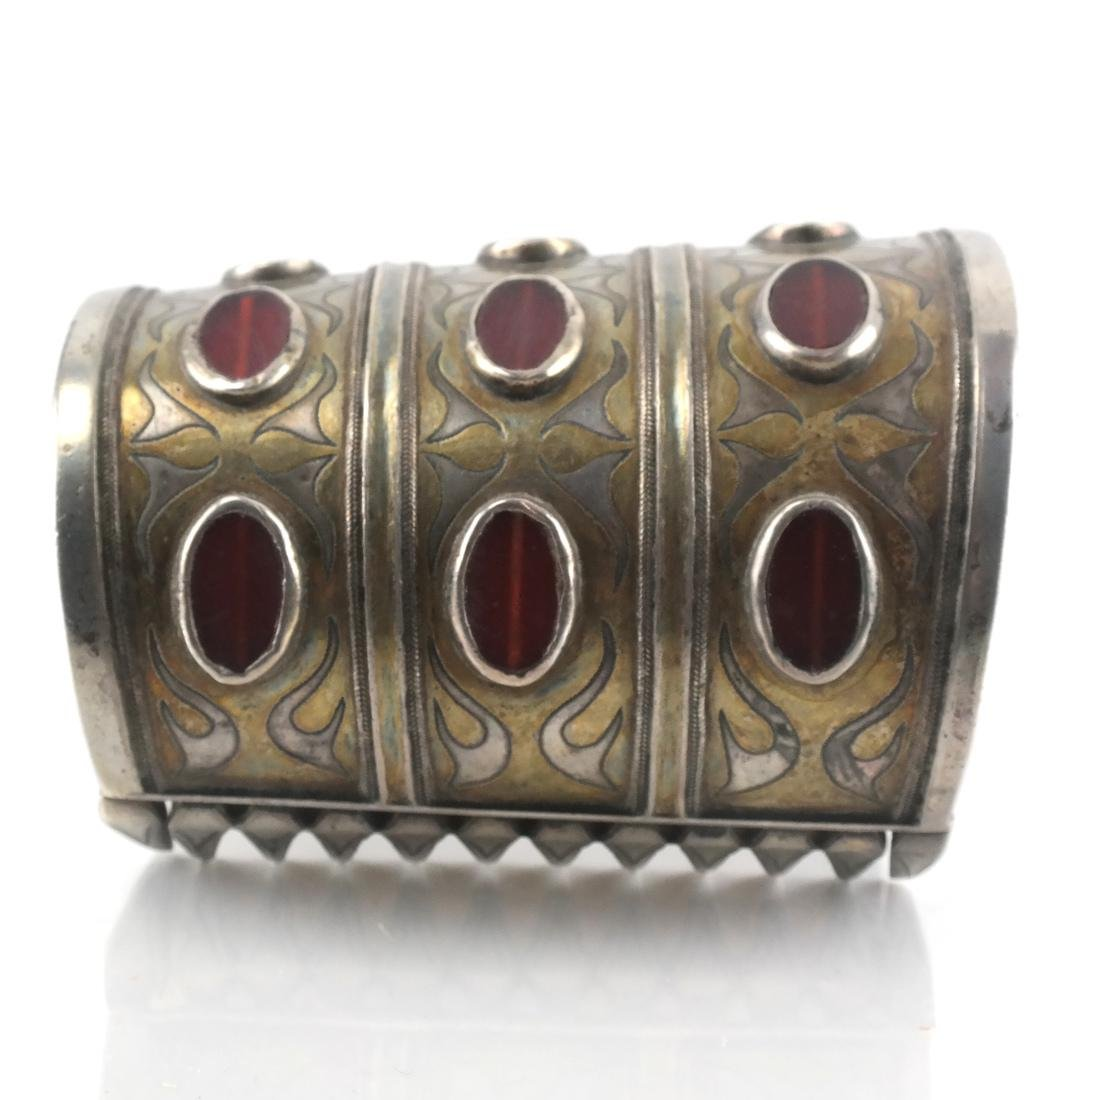 Antique Afghan/Central Asian Silver Jeweled Cuff - 4